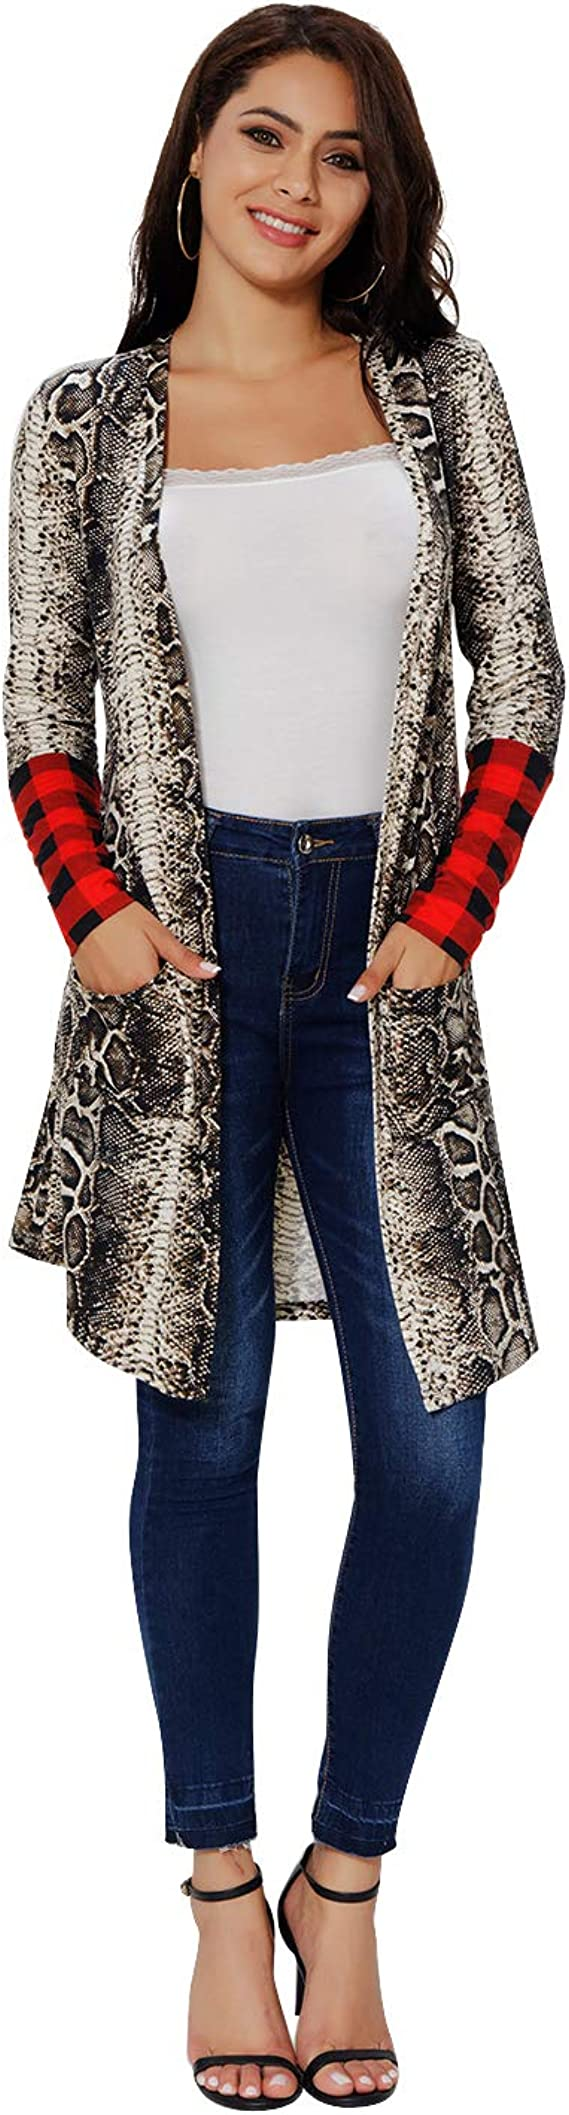 Long Buffalo Plaid Cardigan for Women Plus Size Sweater Open Front Elbow Patch